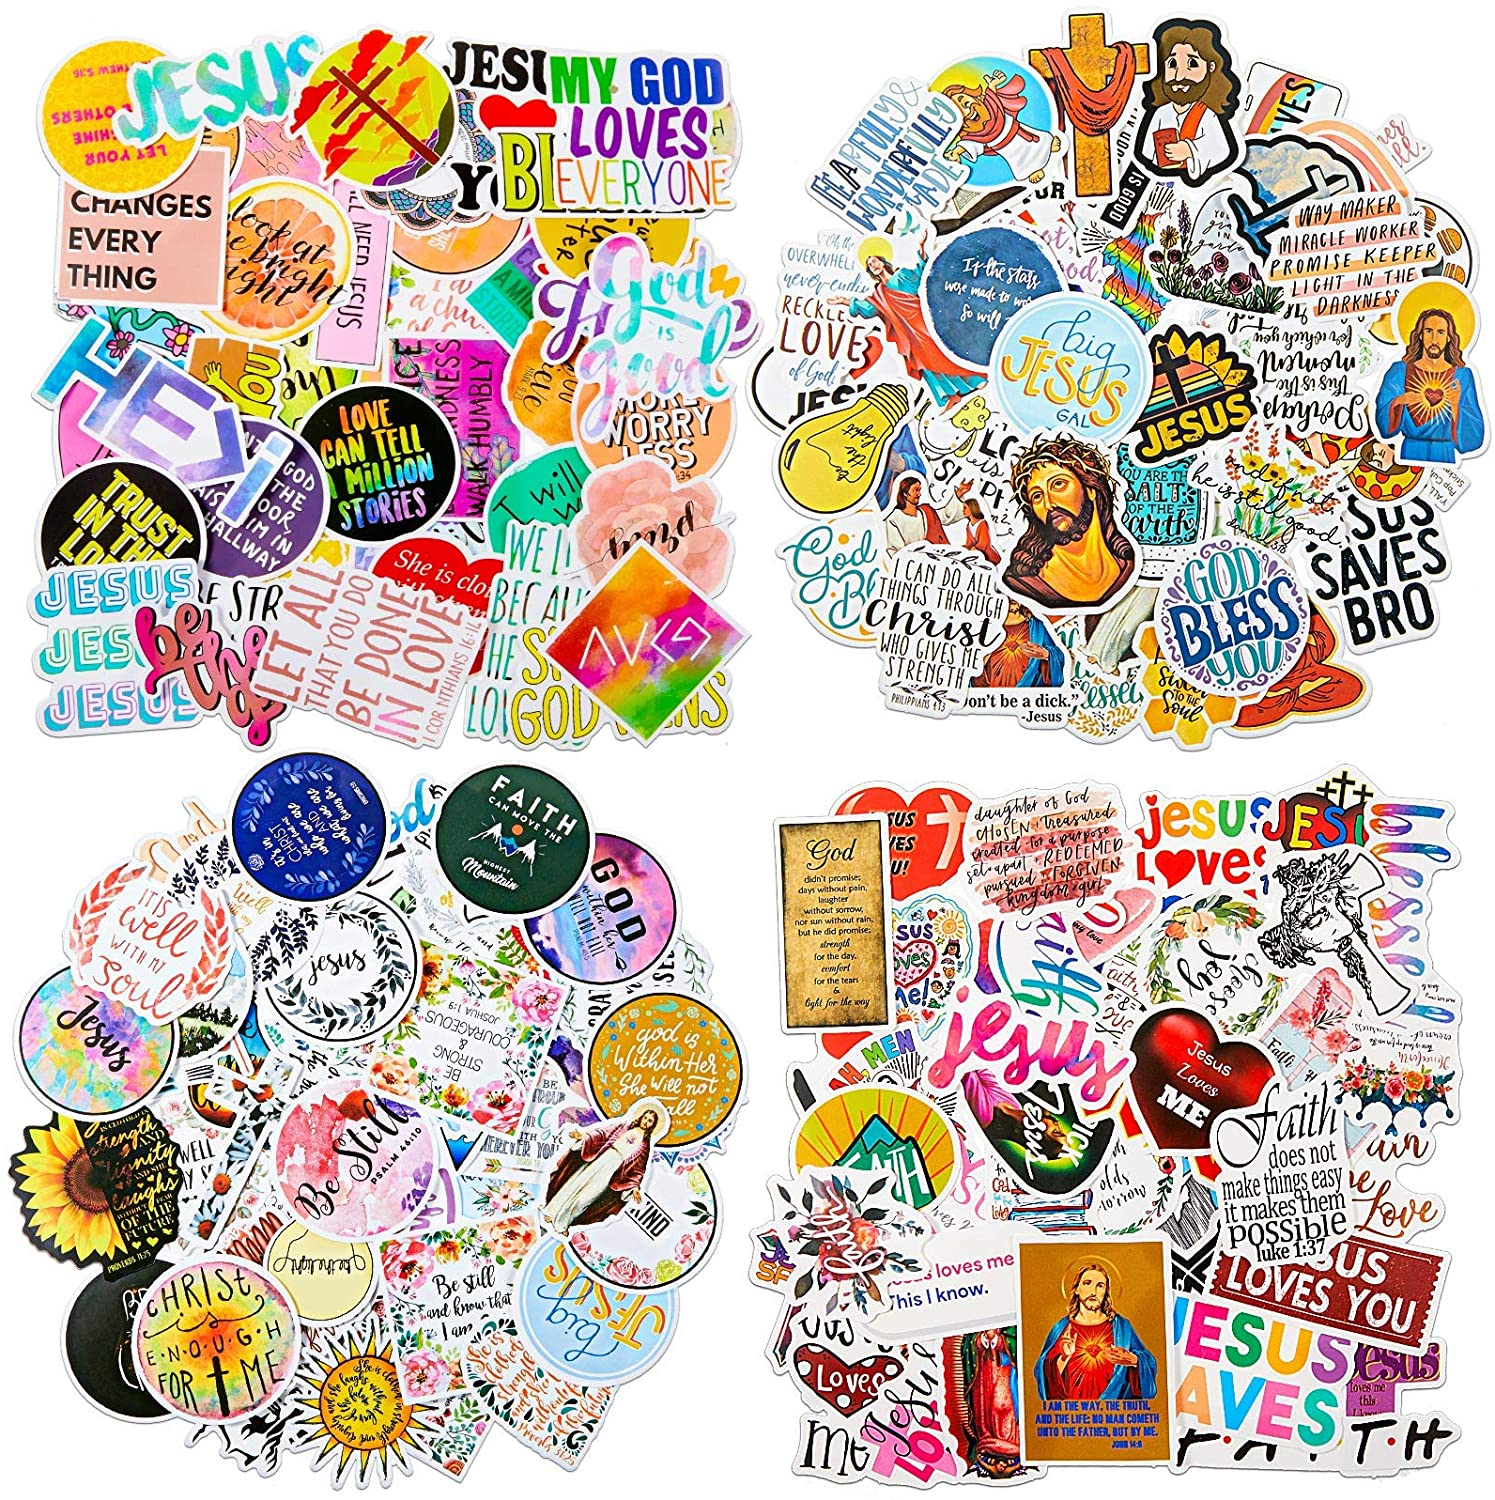 200 Pieces Jesus Christian Stickers Mixed Religious Bible Stickers Waterproof Inspirational Vinyl Laptop Stickers Wisdom Words Decals for Luggage Skateboard Bottle, 4 Styles